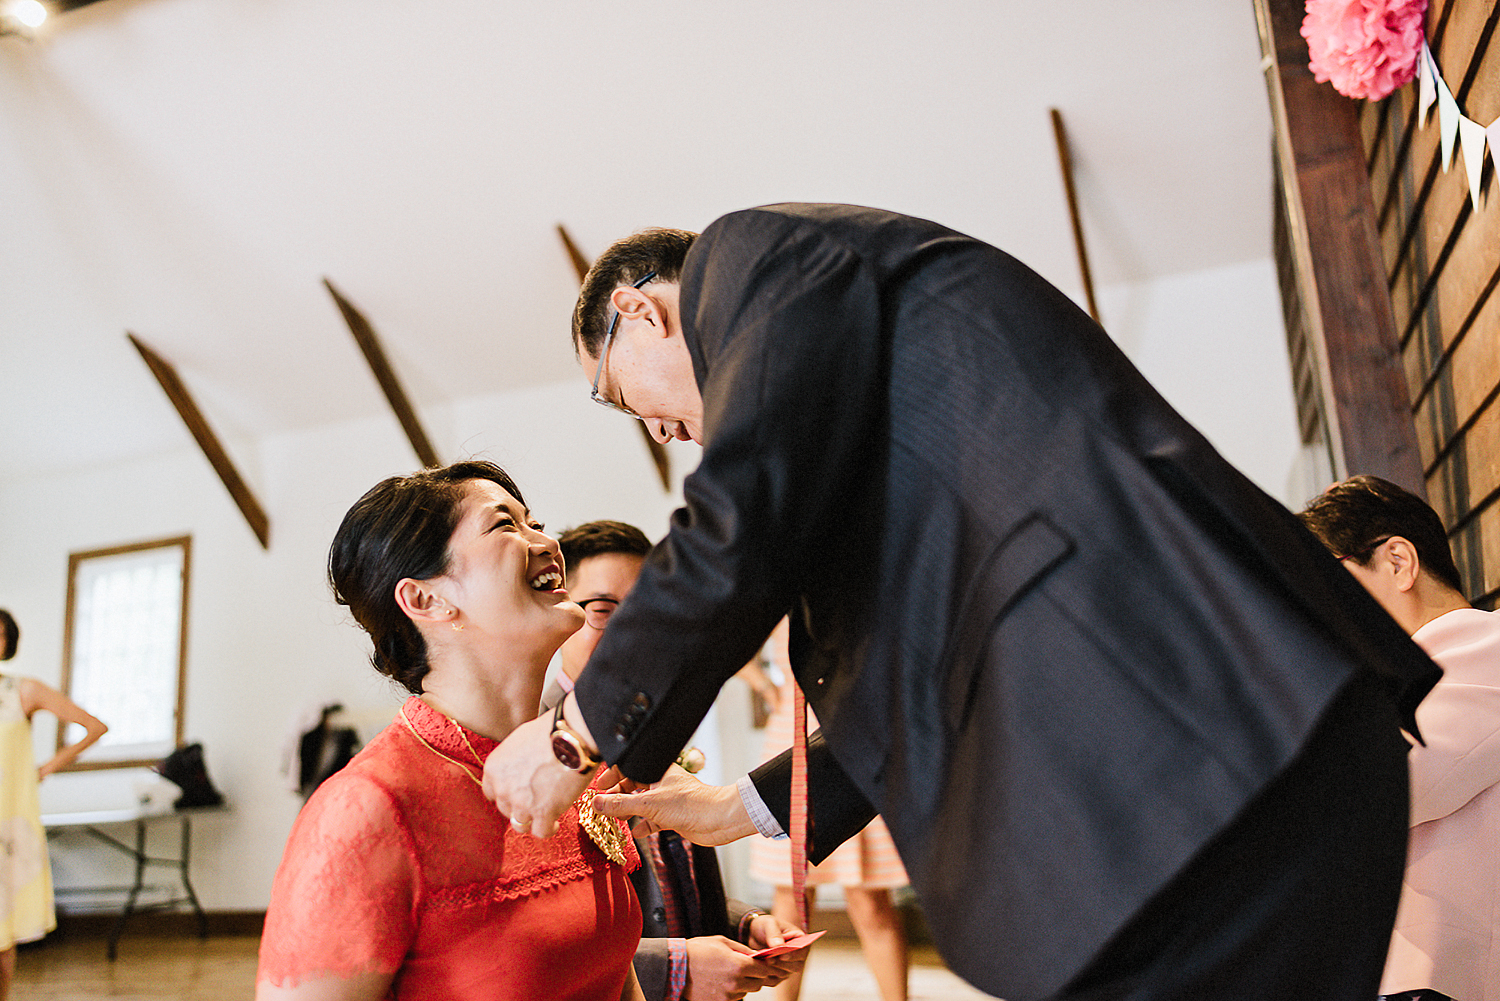 Chinese-Tea-Ceremony-in-outdoor-forest-venue-toronto-high-park-colbourn-lodge-dog-friendly-venue-bride-and-groom-candid-moment-best-documentary-wedding-photographers-Chinese-Tea-Ceremony-Candid-Moment-father-of-bride-giving-gift.jpg